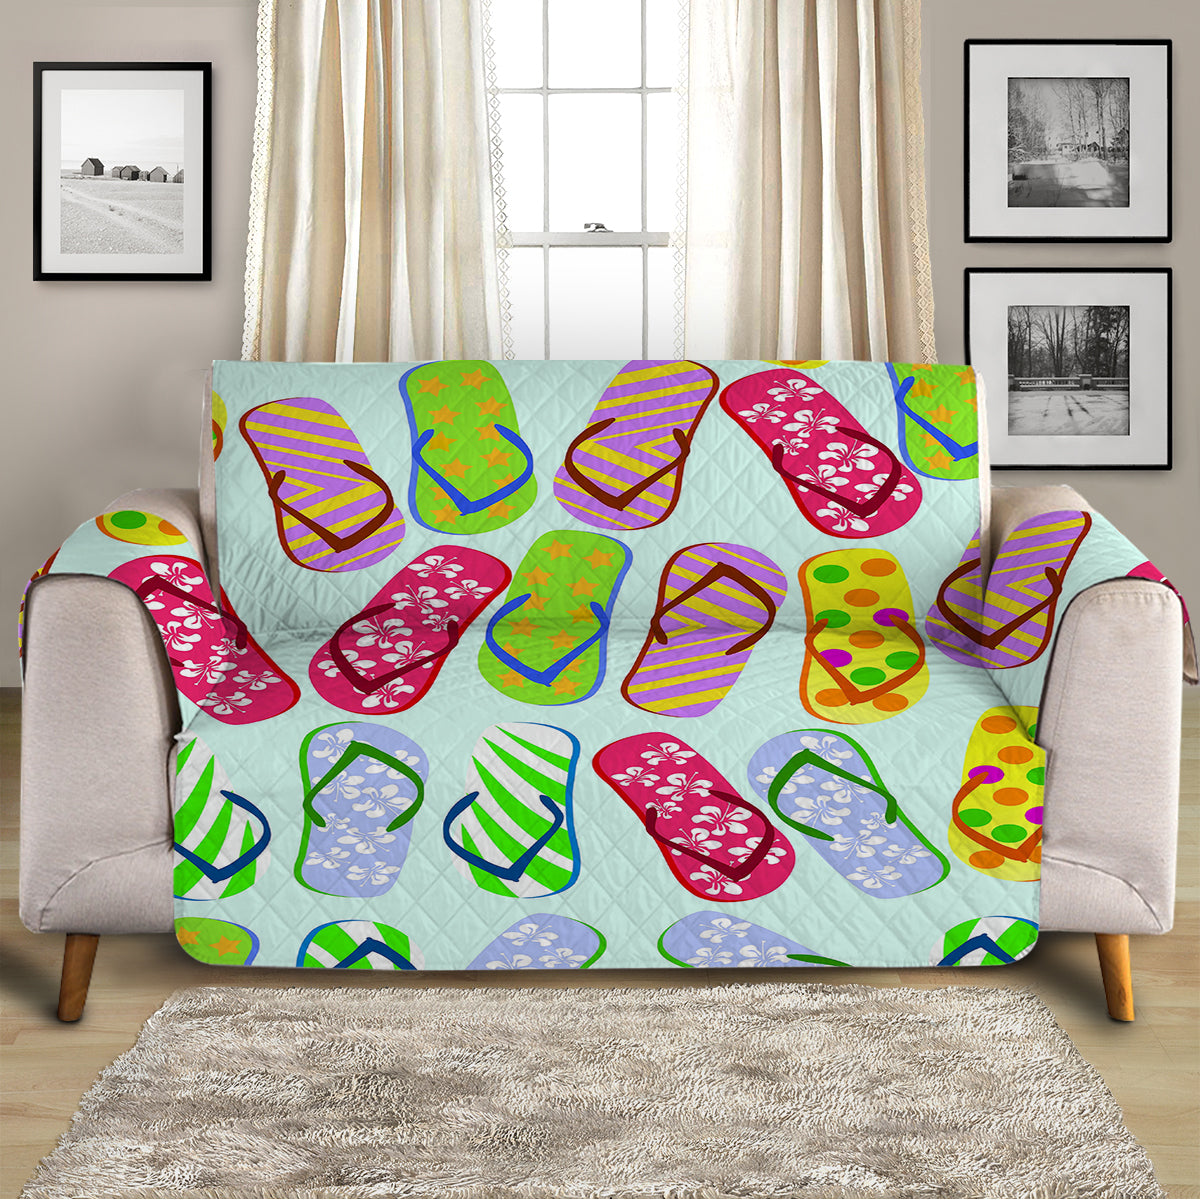 Flip Flops Kinda Girl Sofa Cover